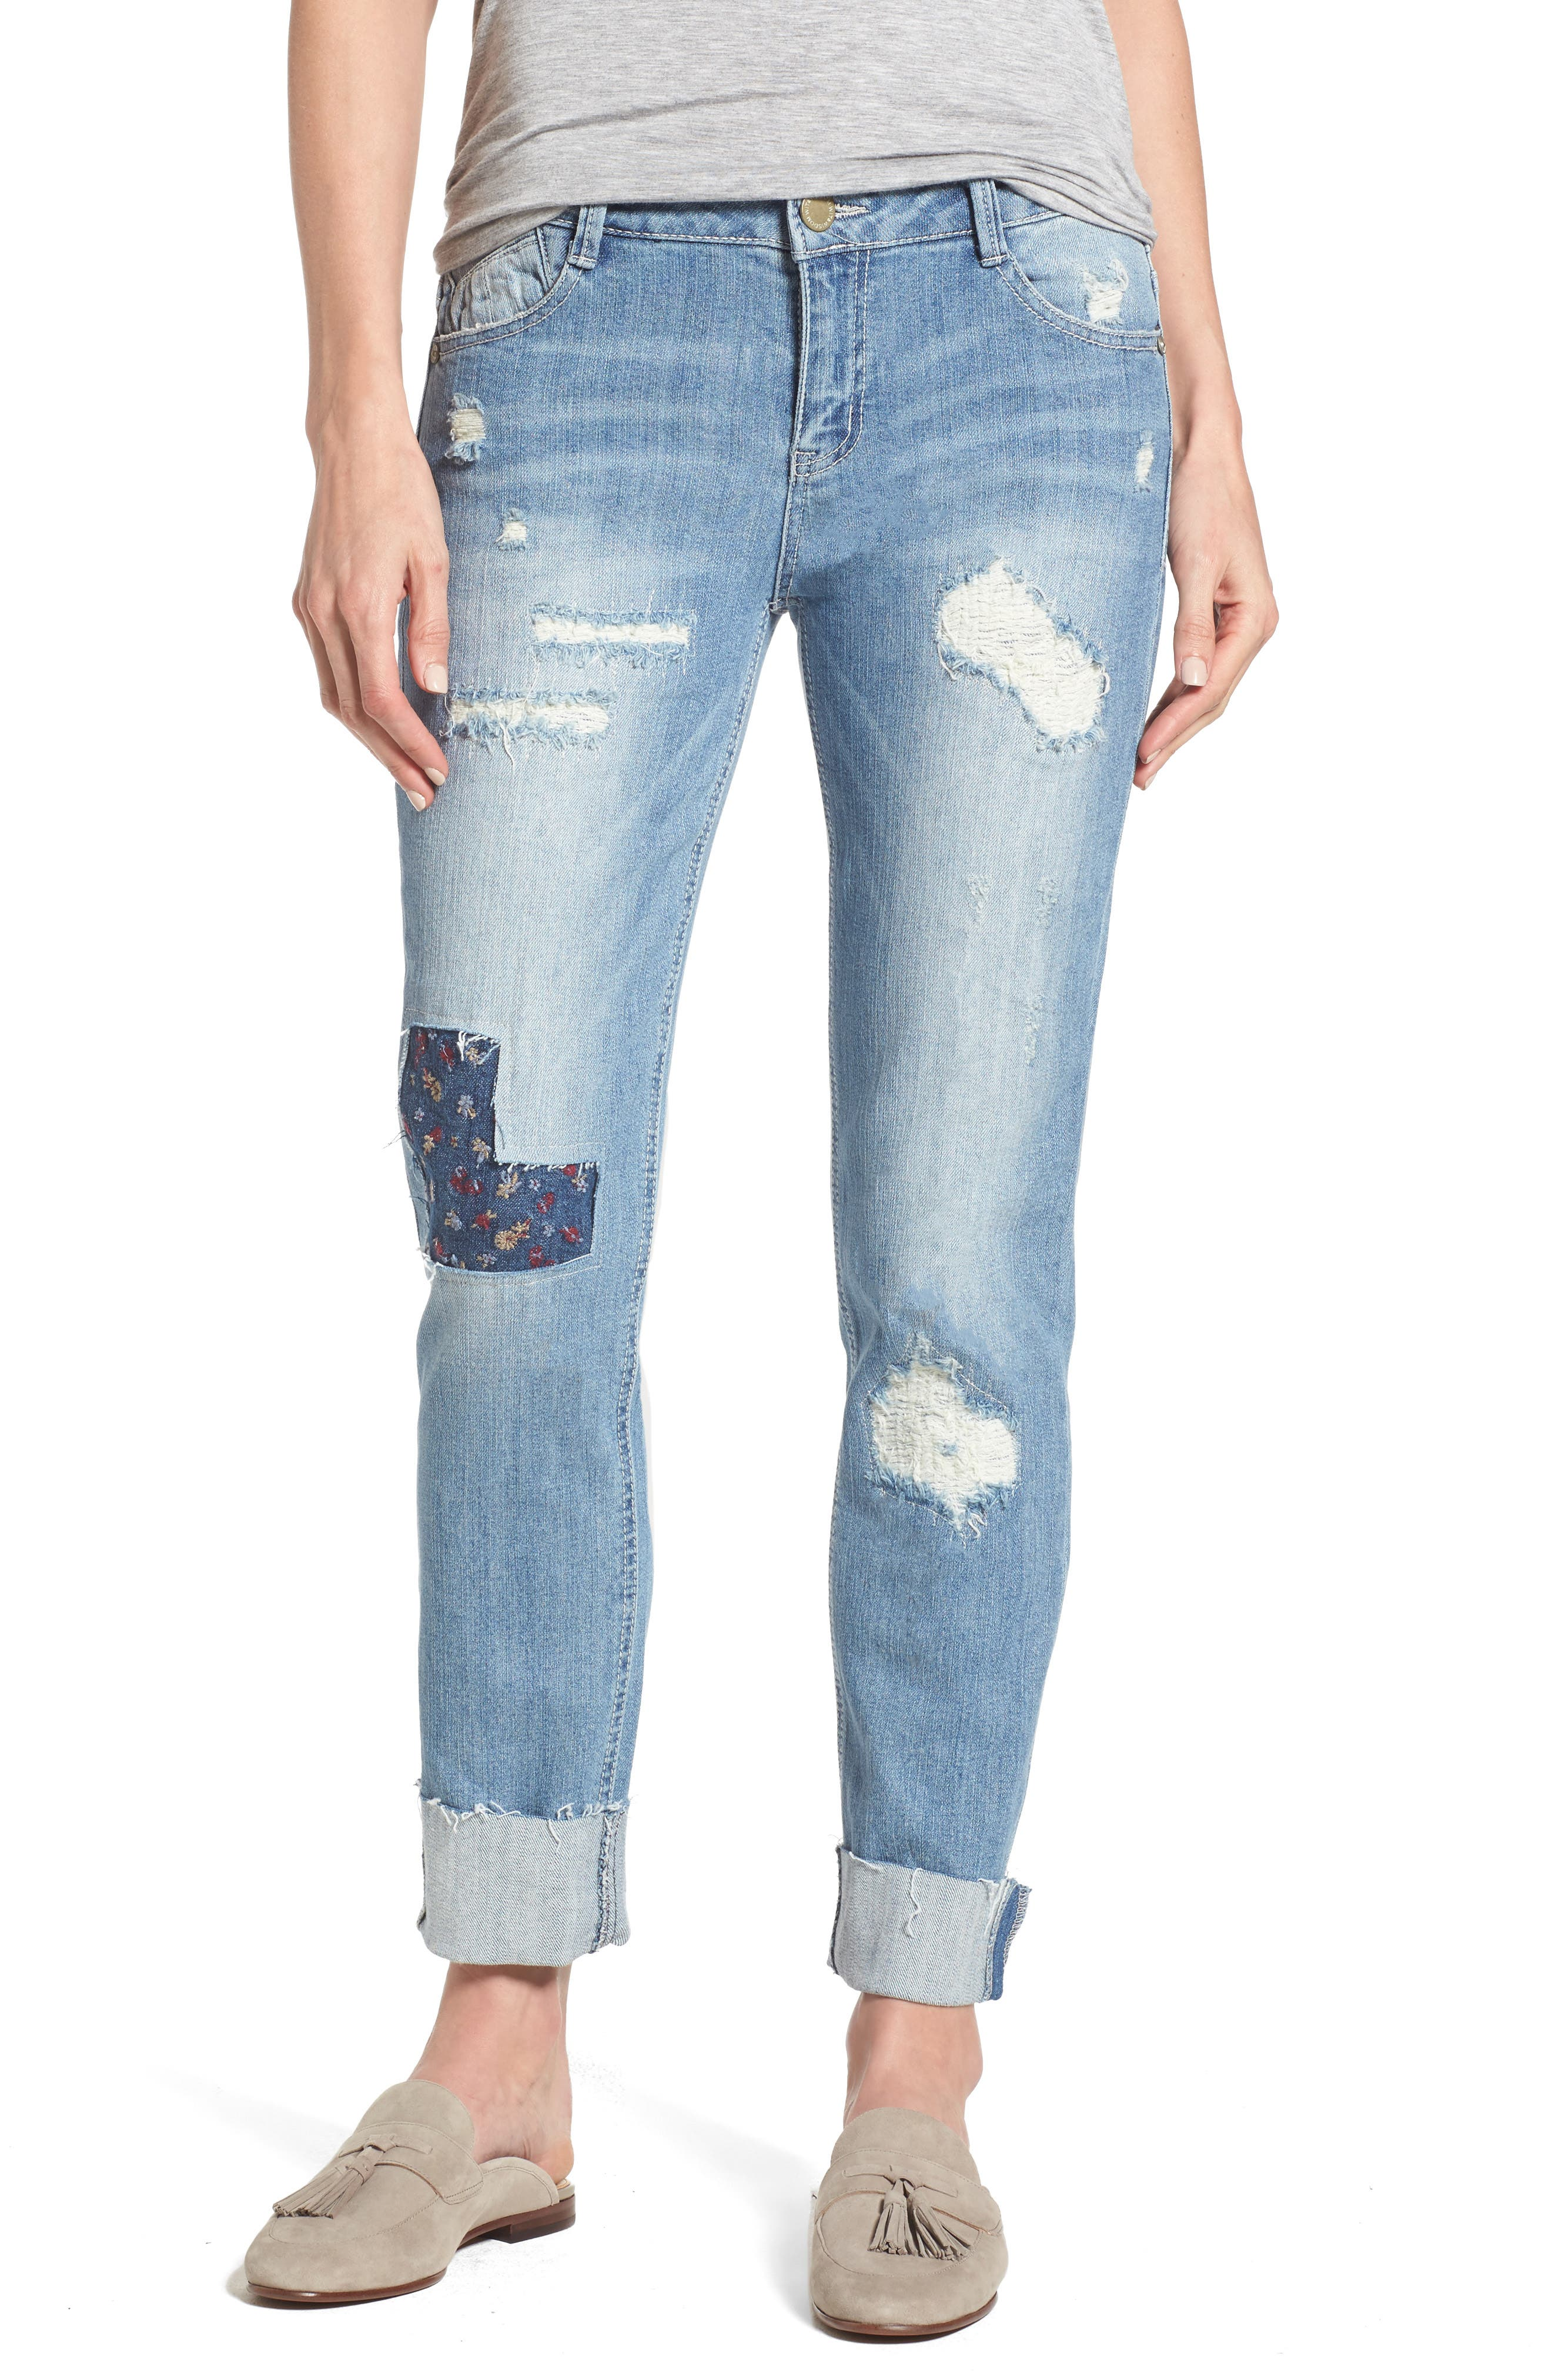 Wit & Wisdom Ripped Girlfriend Jeans (Nordstrom Exclusive)